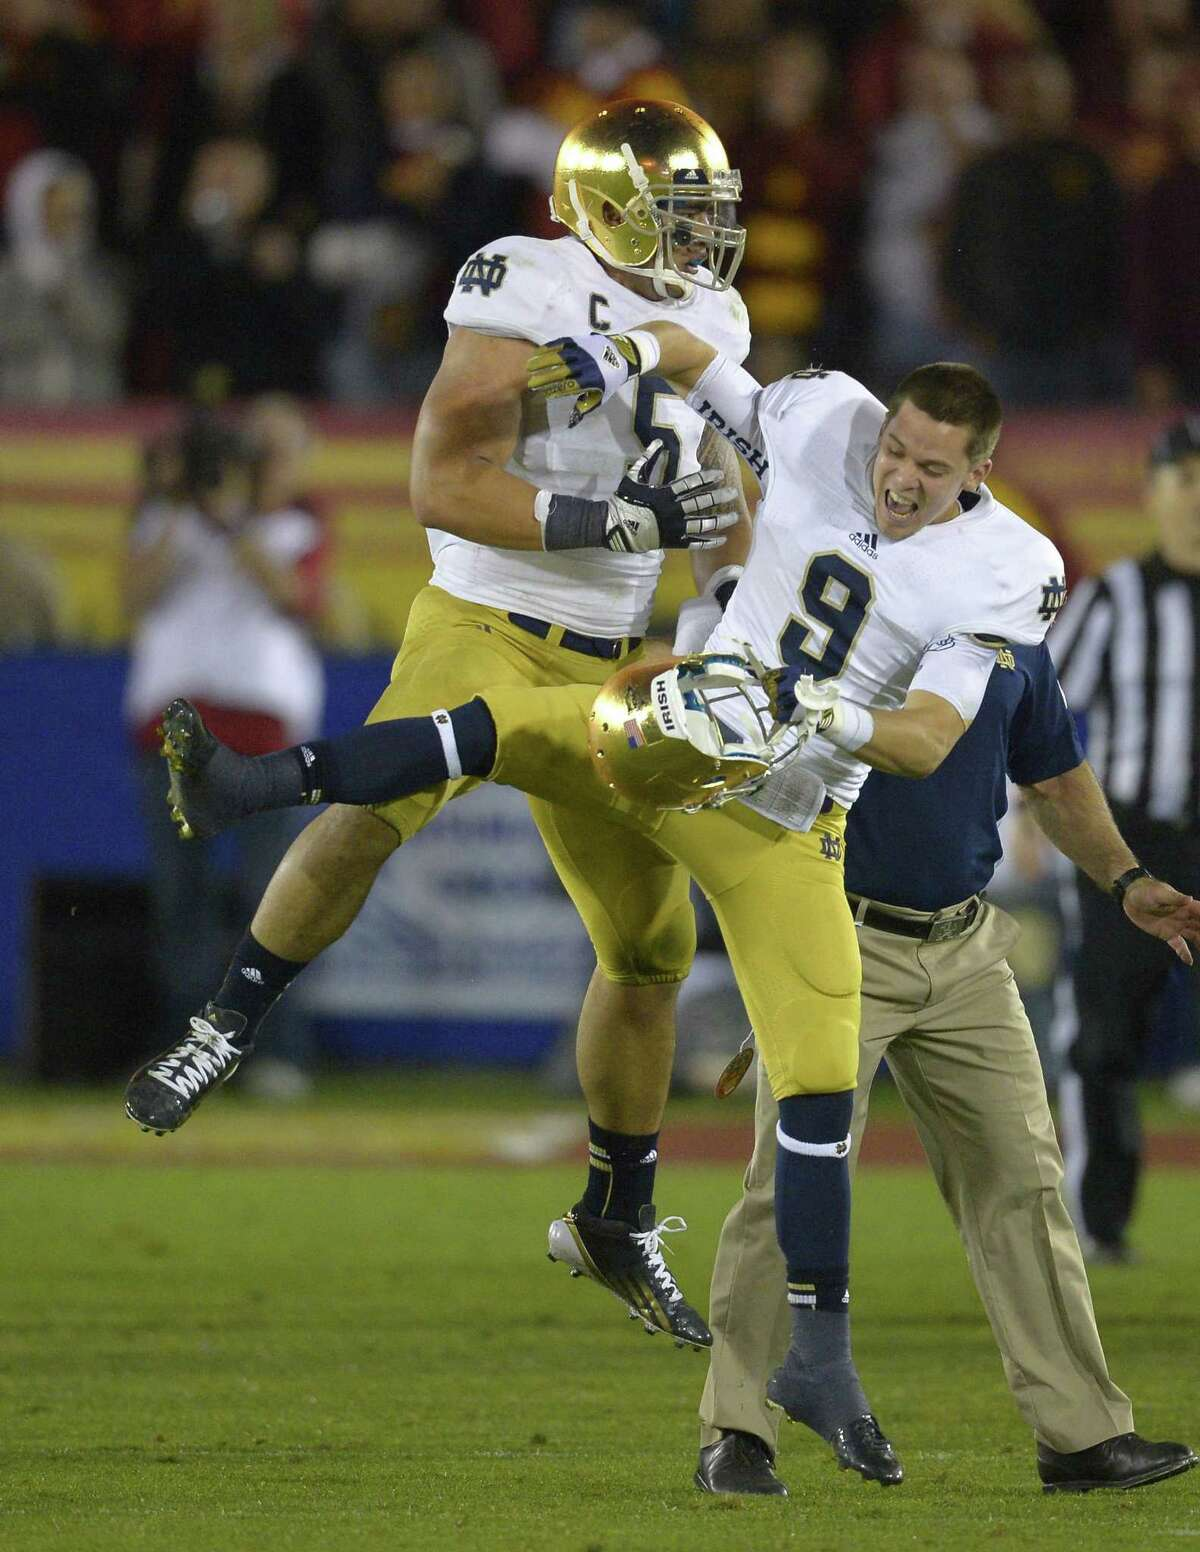 Notre Dame linebacker Manti Te'o, left, celebrates with Notre Dame wide receiver Robby Toma in the closing seconds of their game against USC. By The Associated Press